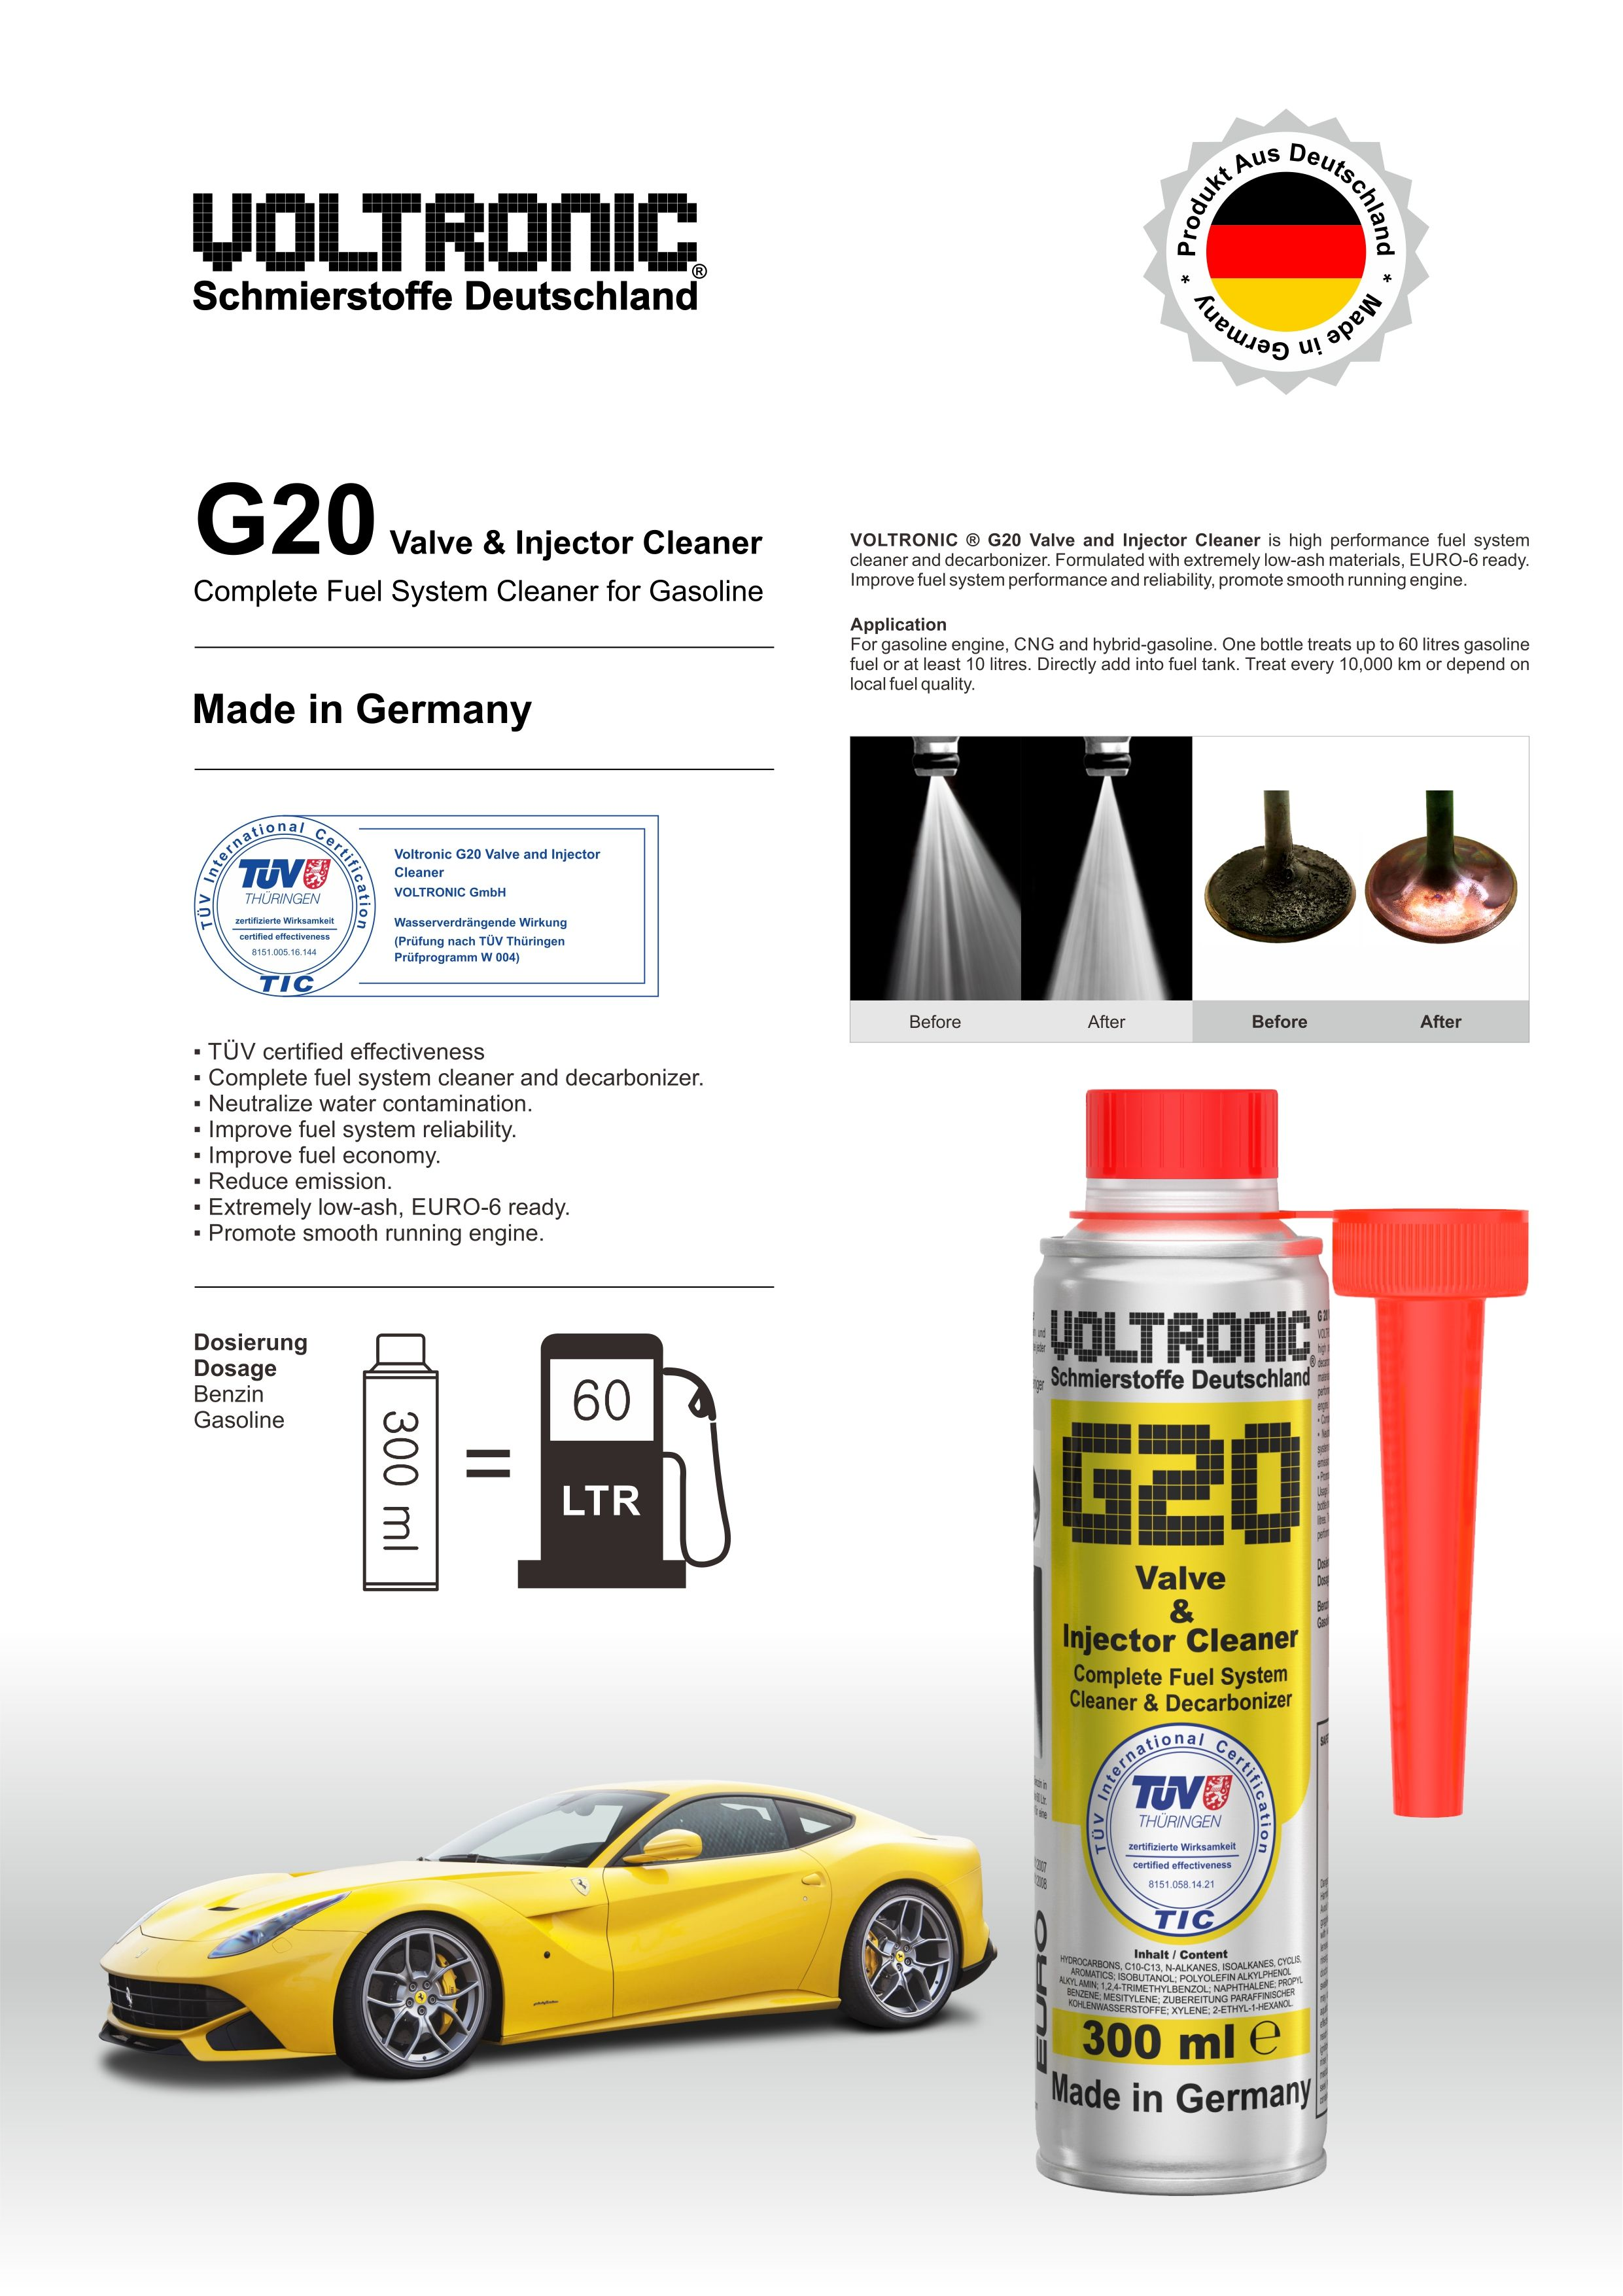 VOLTRONIC G20 Valve and Injector Cleaner, complete fuel